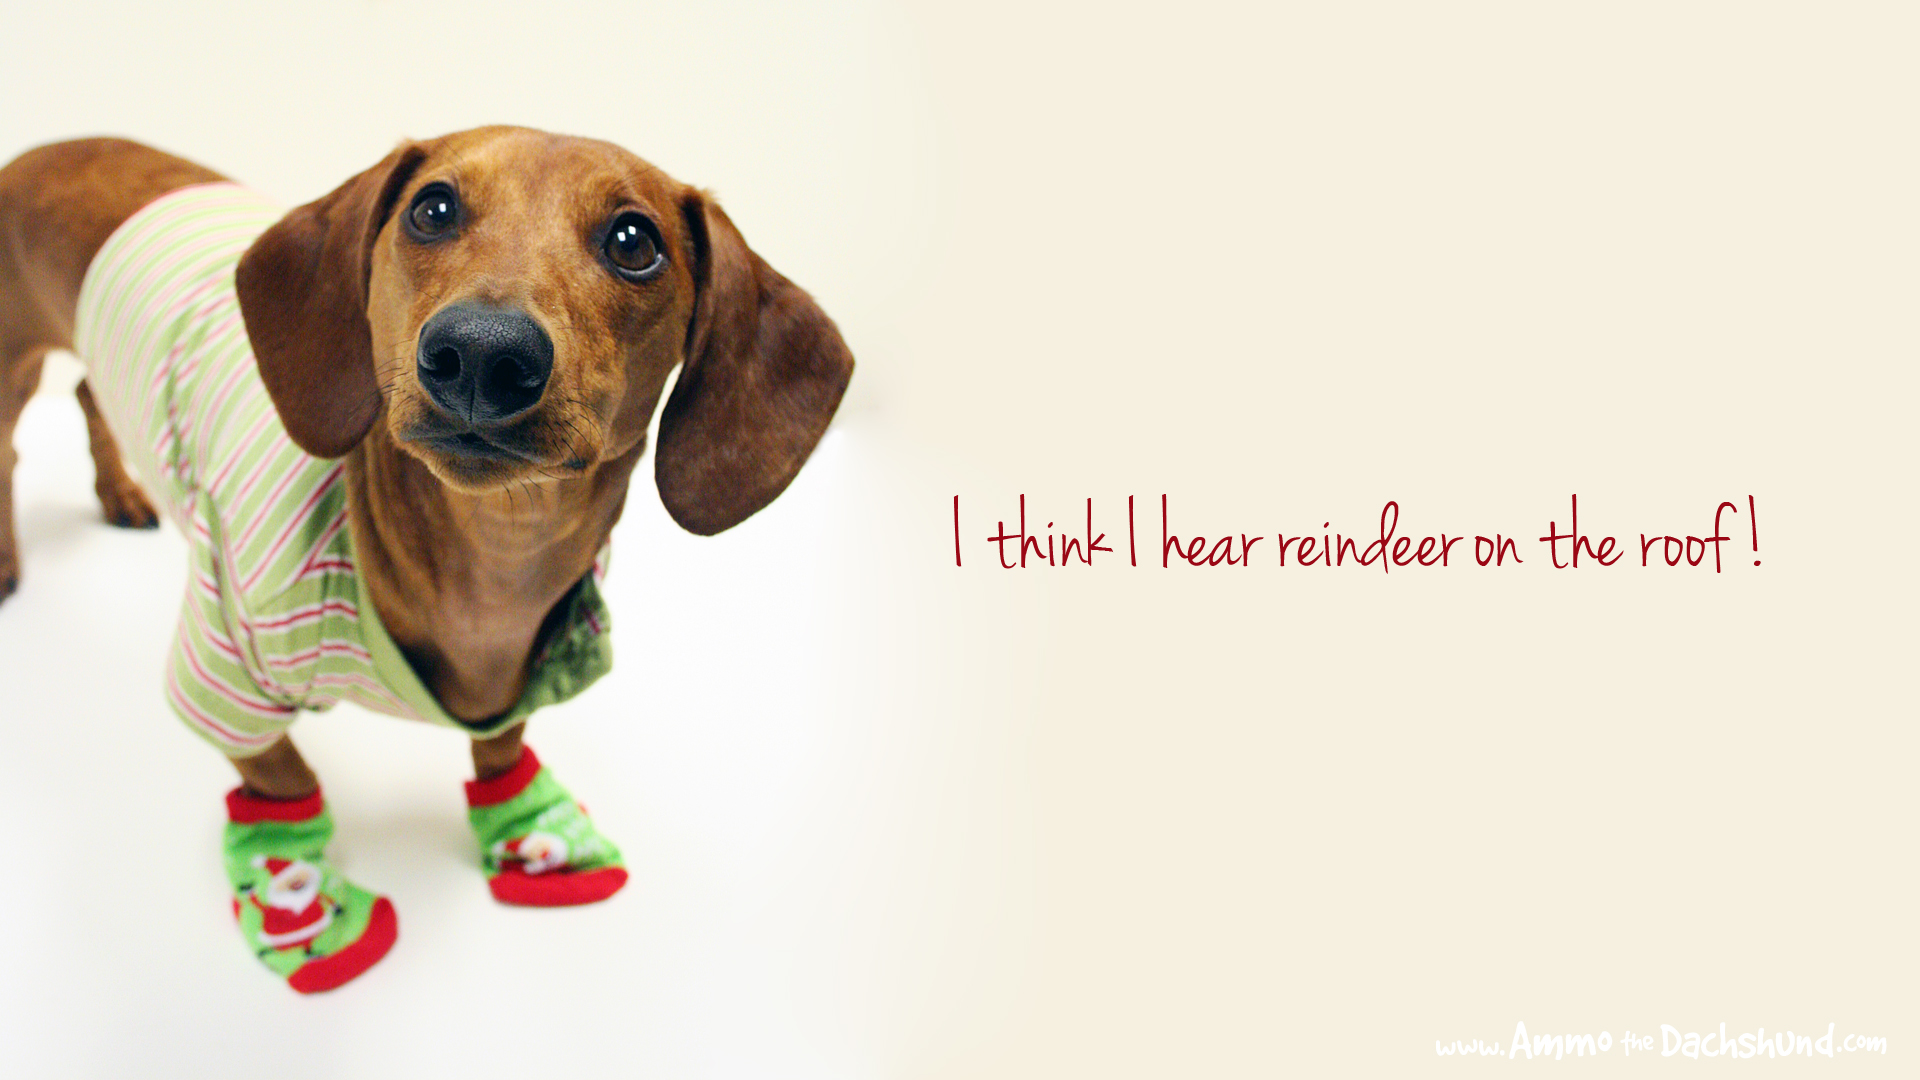 12 Days of Cheer Holiday Desktop Wallpaper Ammo the Dachshund 1920x1080